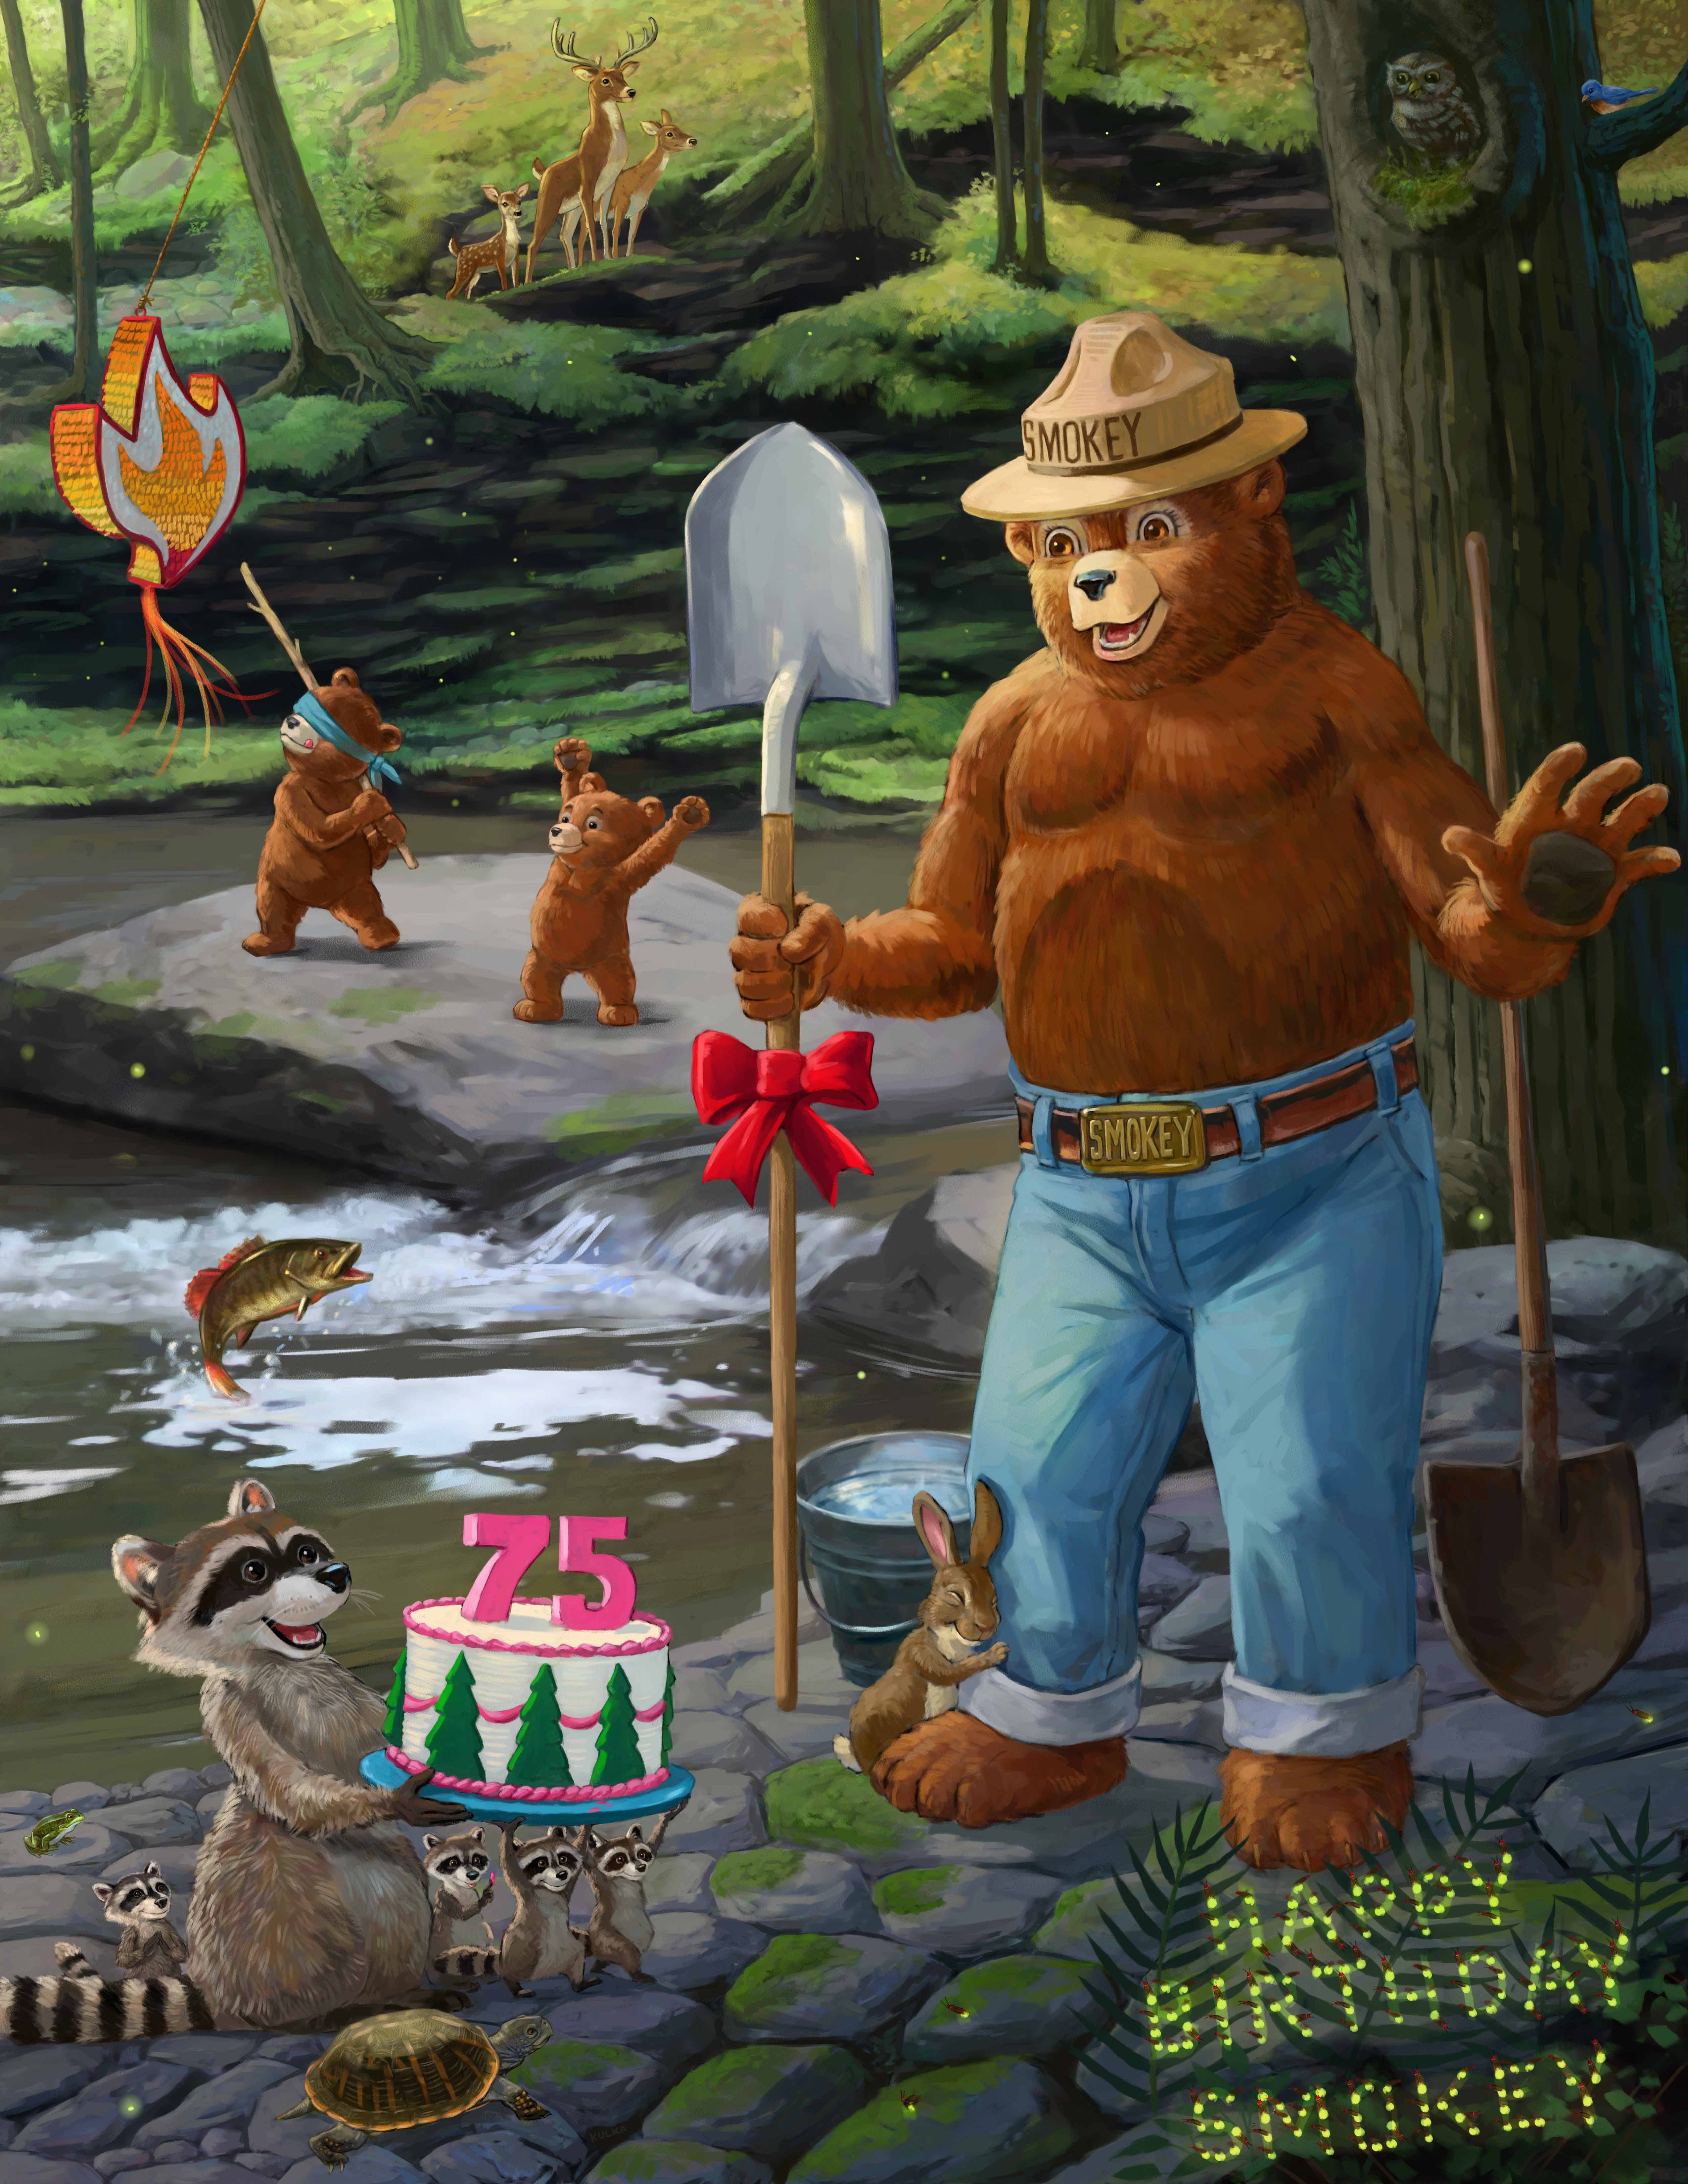 An illustration of Smokey Bear holding a shovel with a racoon holding a birthday cake with the number 75 on the cake.